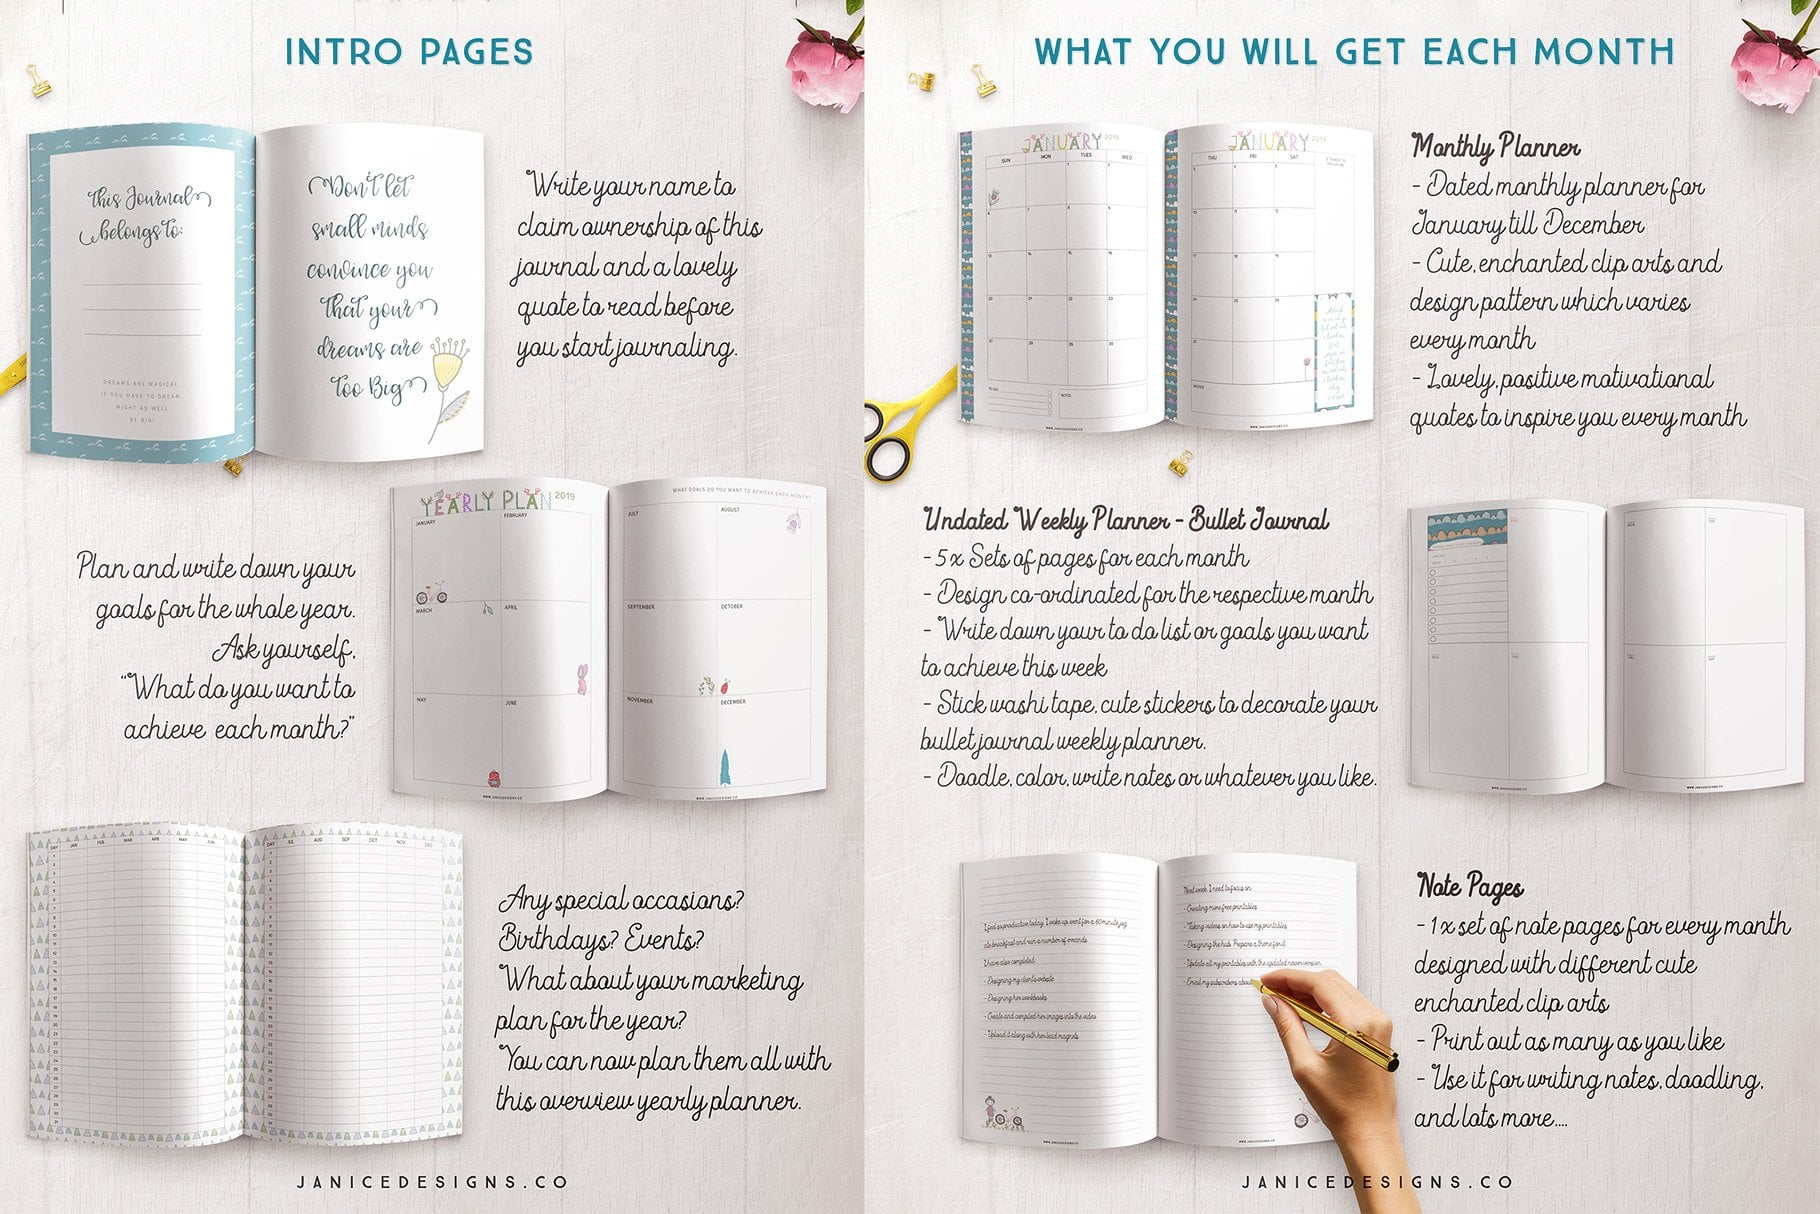 The Enchanted Woods Journal (3 sizes) - $35 - enchanted woods journal intro and monthly pages